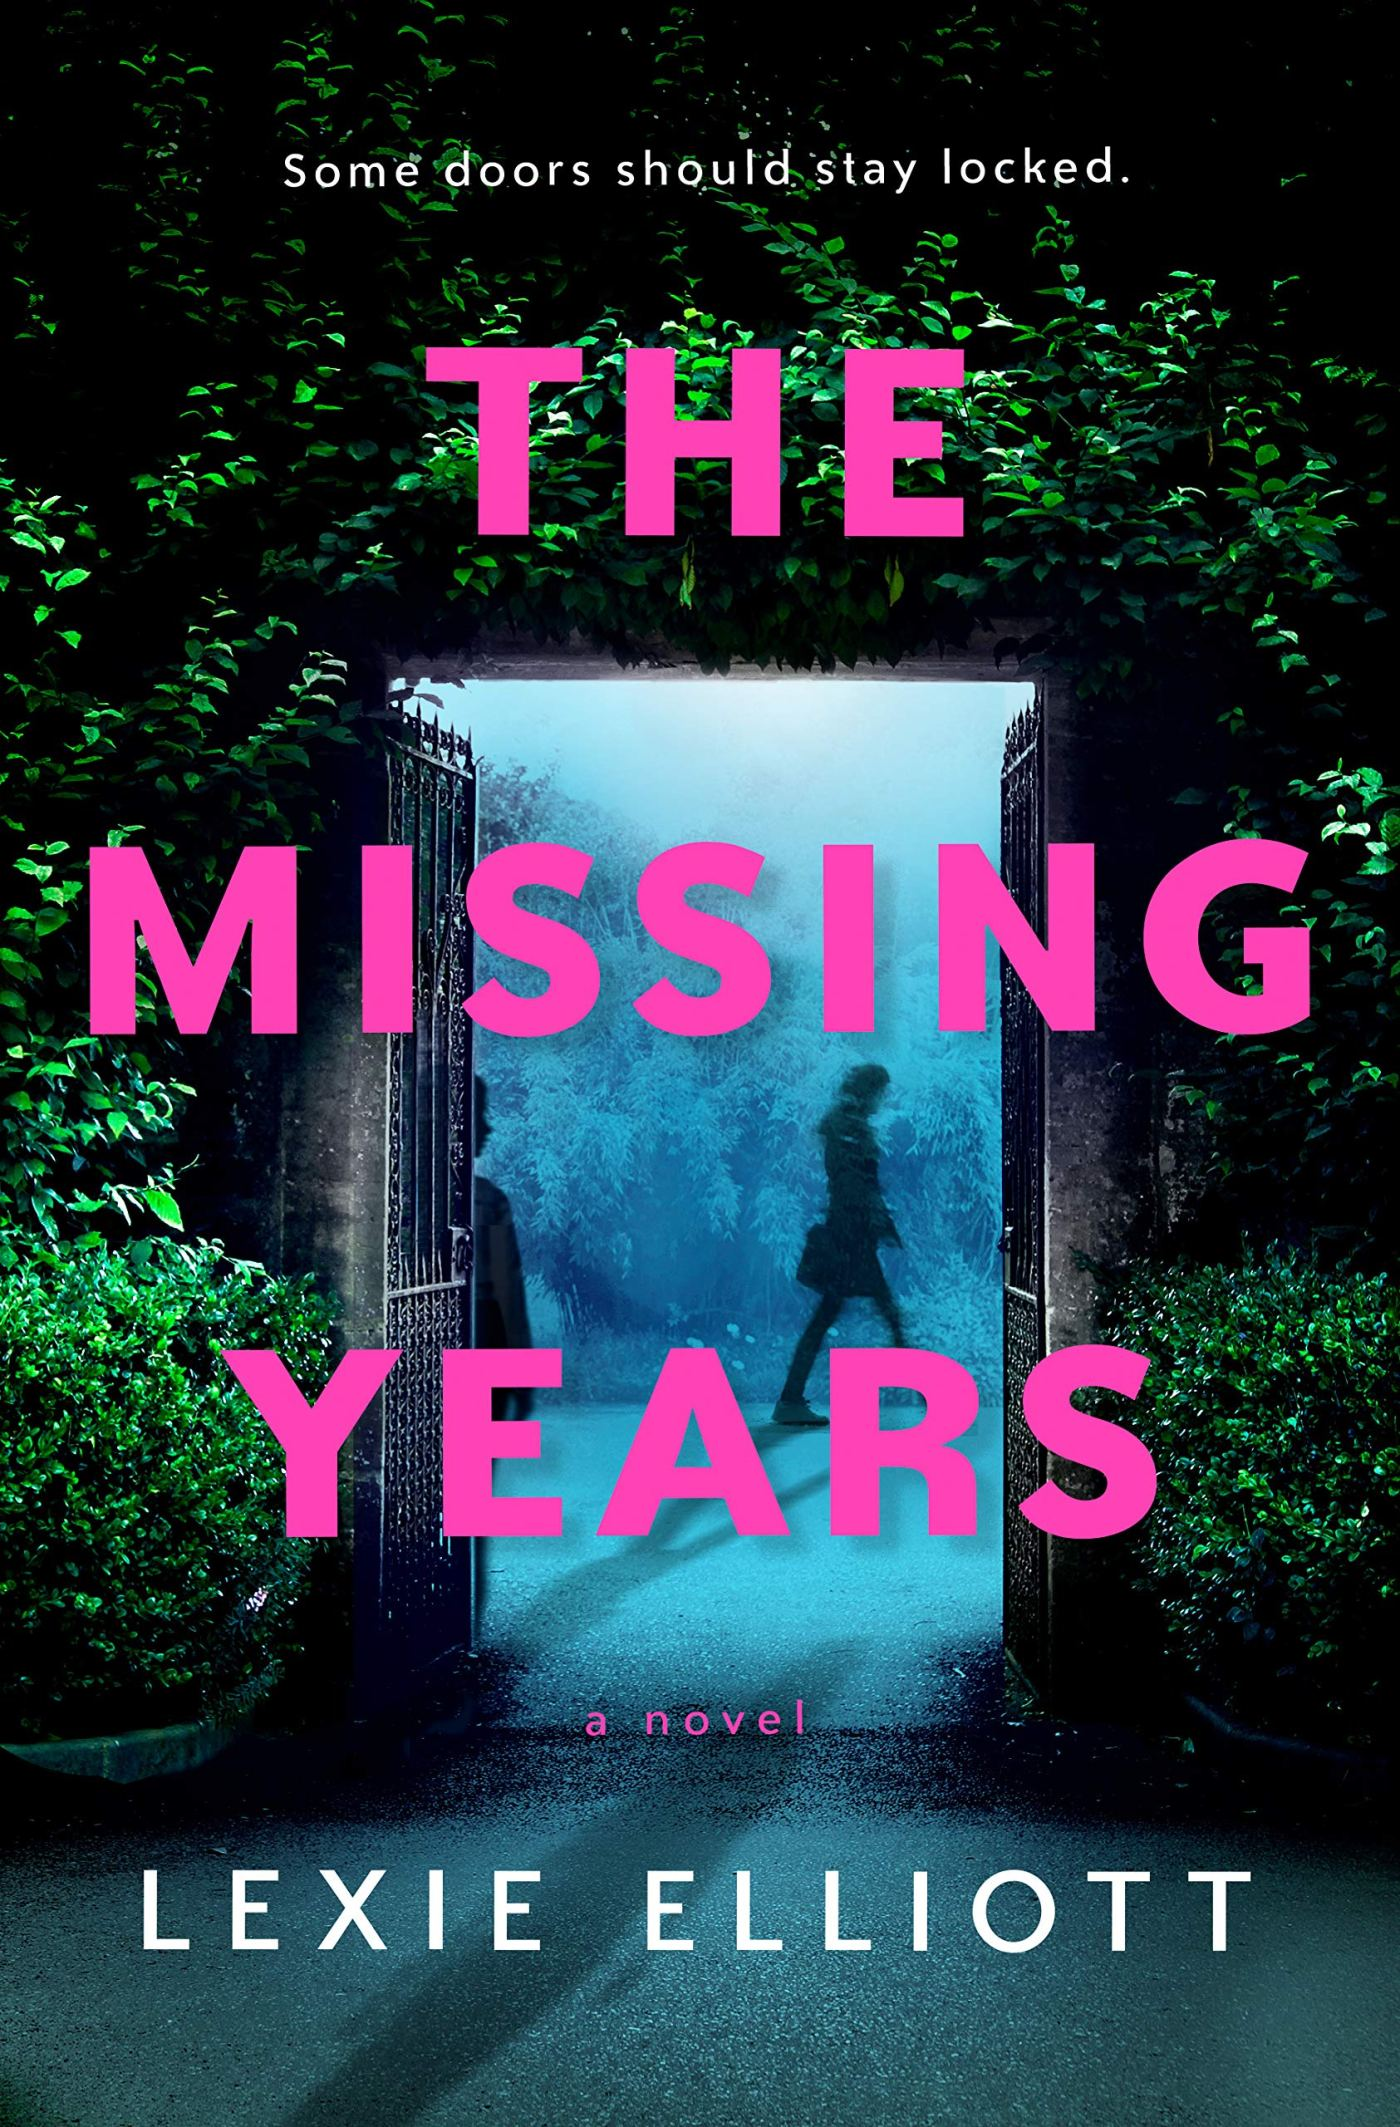 lexie elliott - the missing years